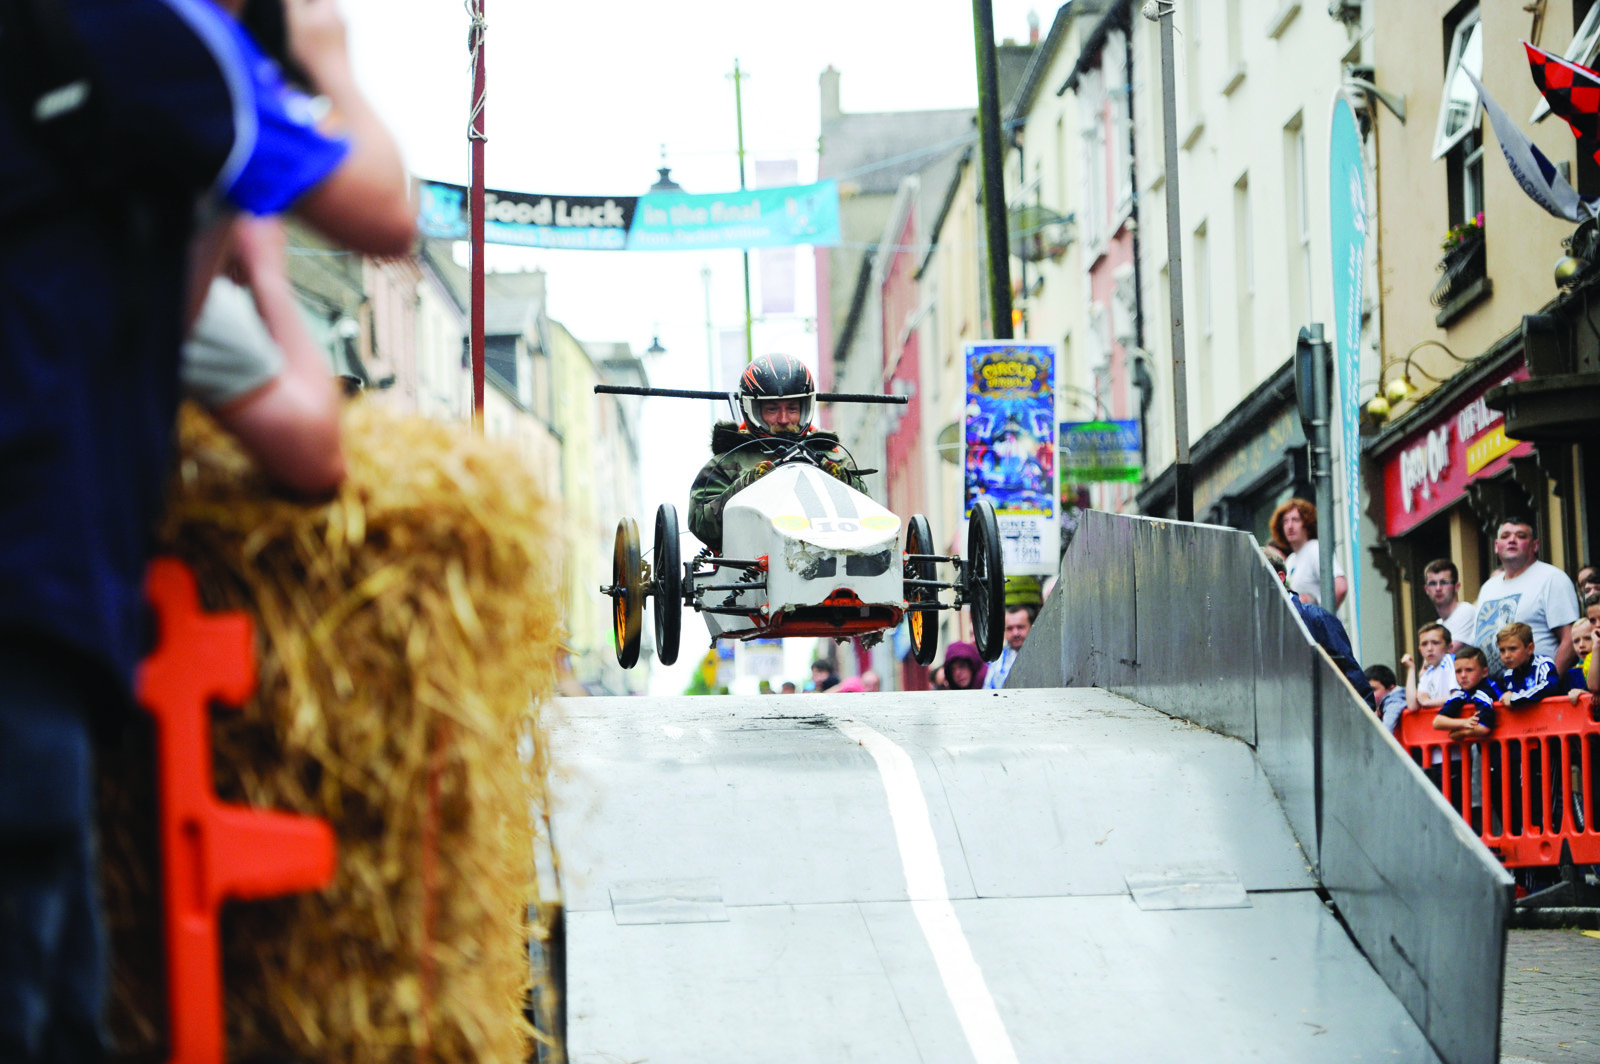 The Gypsy Blood soapbox going over the ramp during the race. ©Rory Geary/The Northern Standard